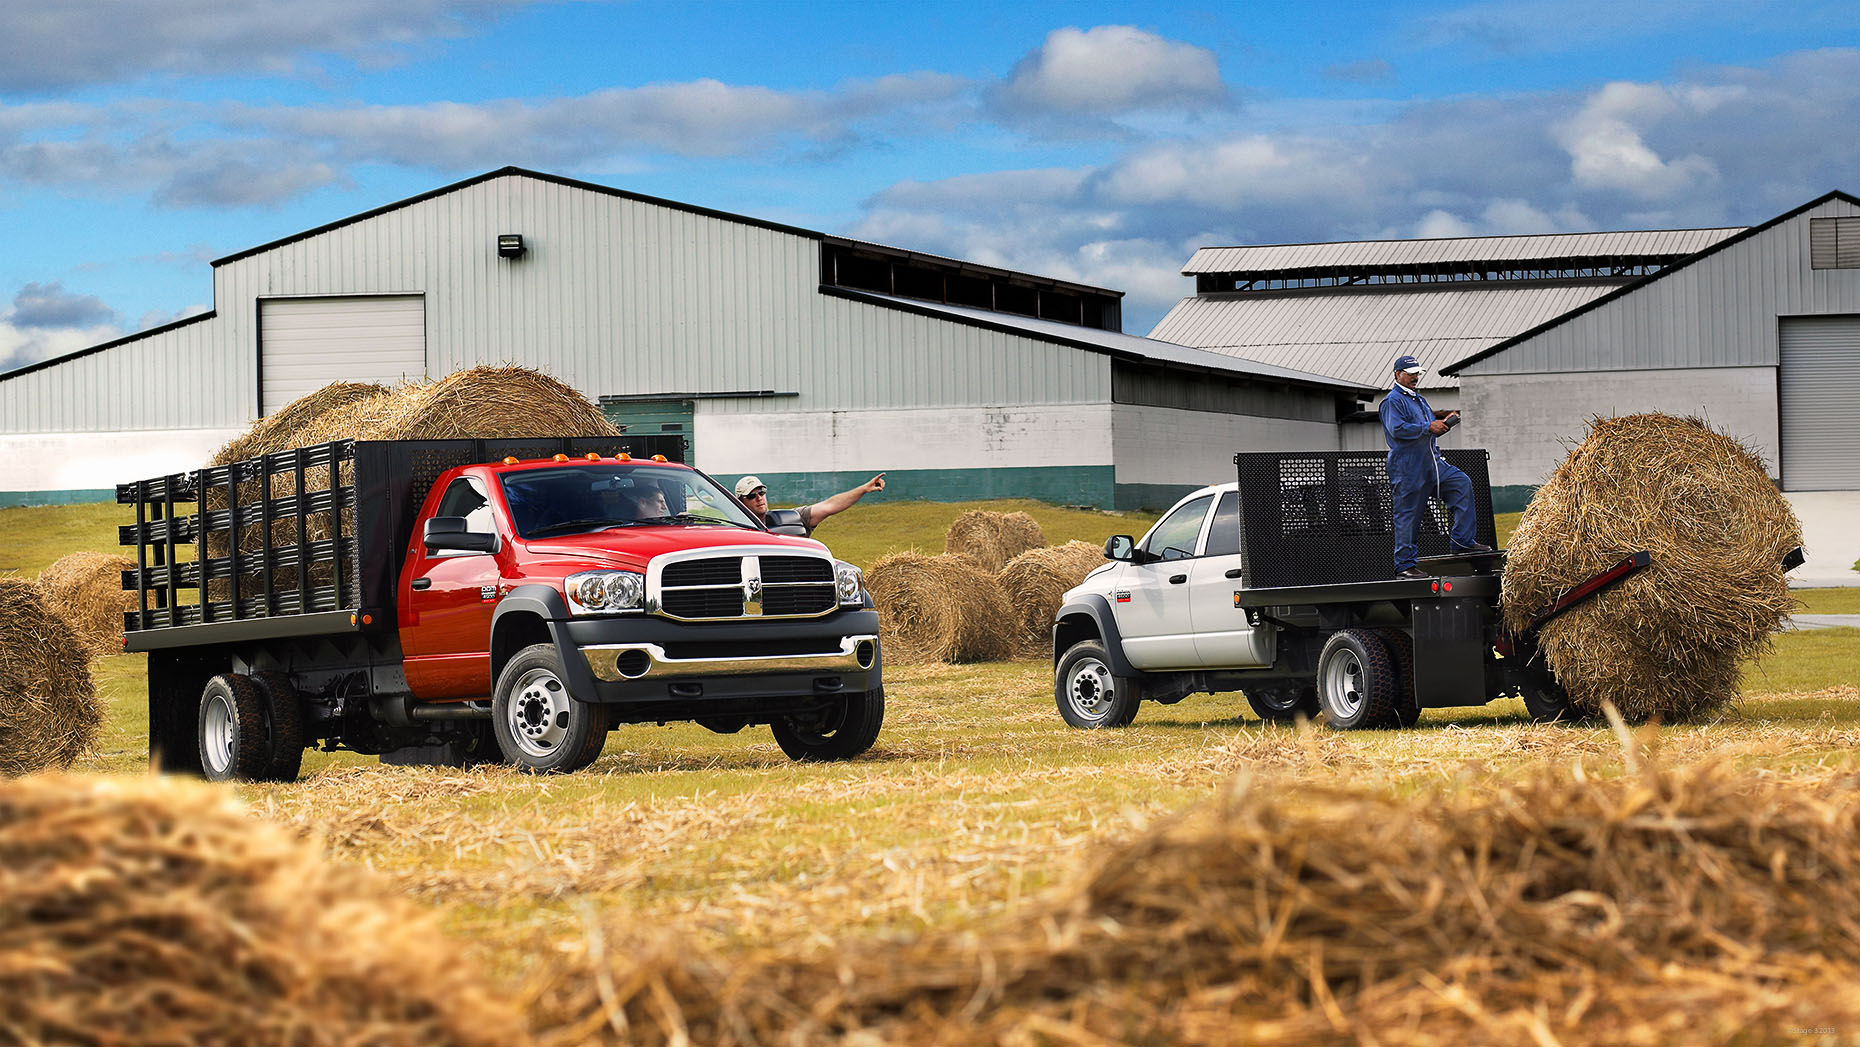 Stage3_Retouching_Dodge Ram Hay Farm1860_0001_final.jpg